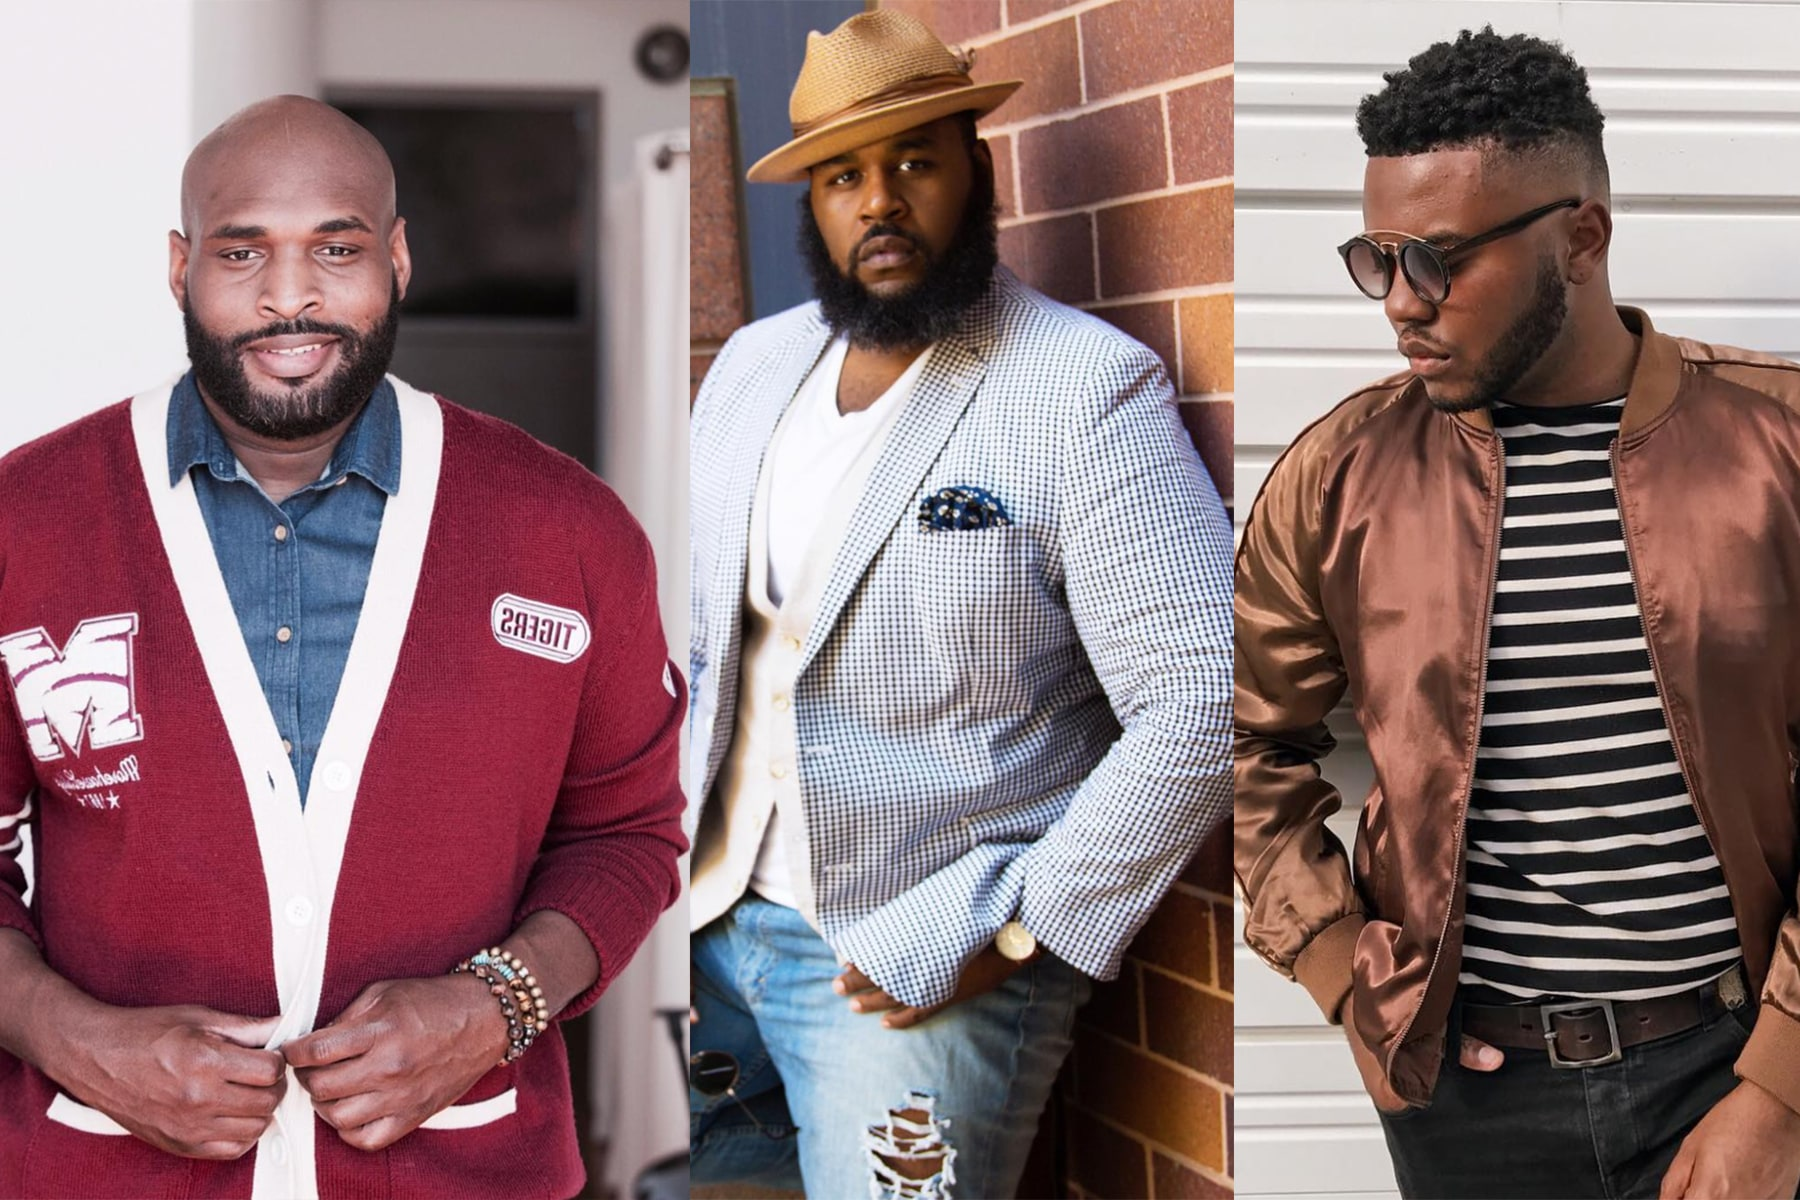 de711d9775e 10 Plus Size Male Bloggers Kicking Down The Doors Of Fashion. These guys  have serious style!